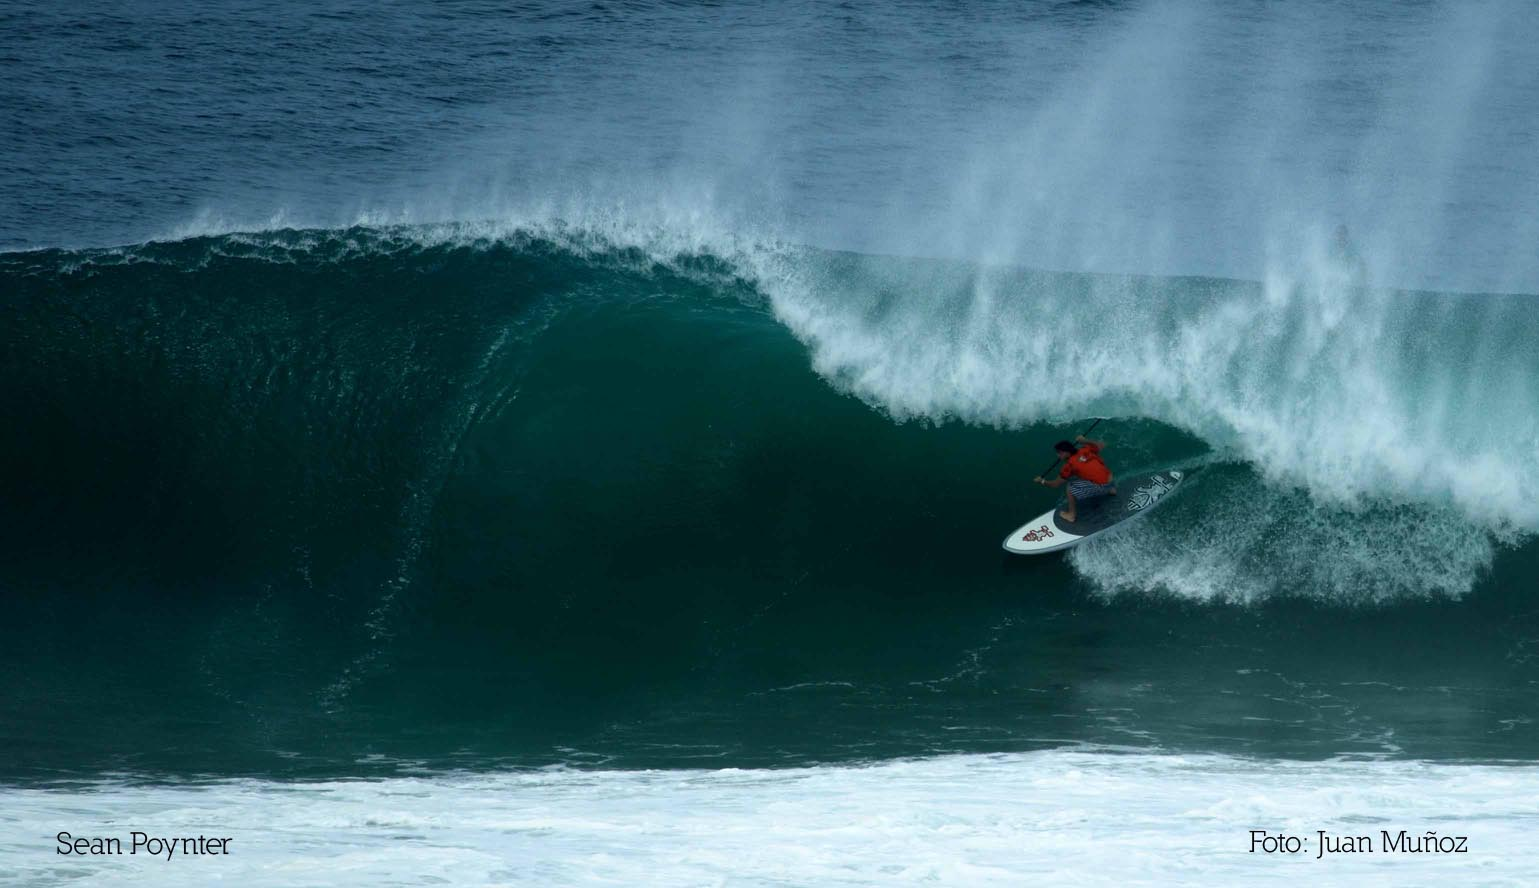 Interview – Stand Up Paddle World Tour Surfer Sean Poynter